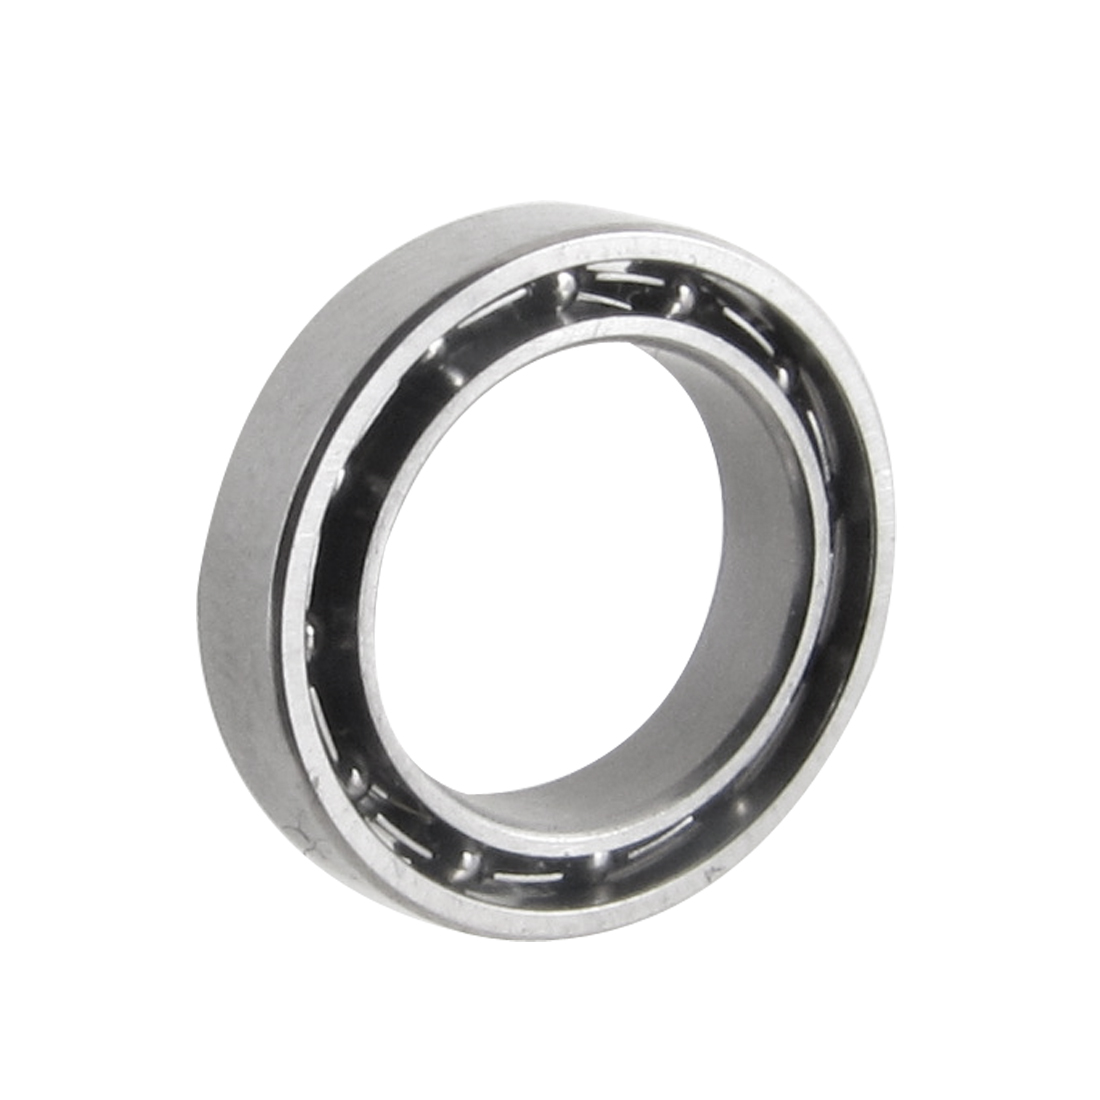 12mm x 8mm x 2.5mm Non Sealed Electric Hammer Deep Groove Ball Bearing Silver Tone